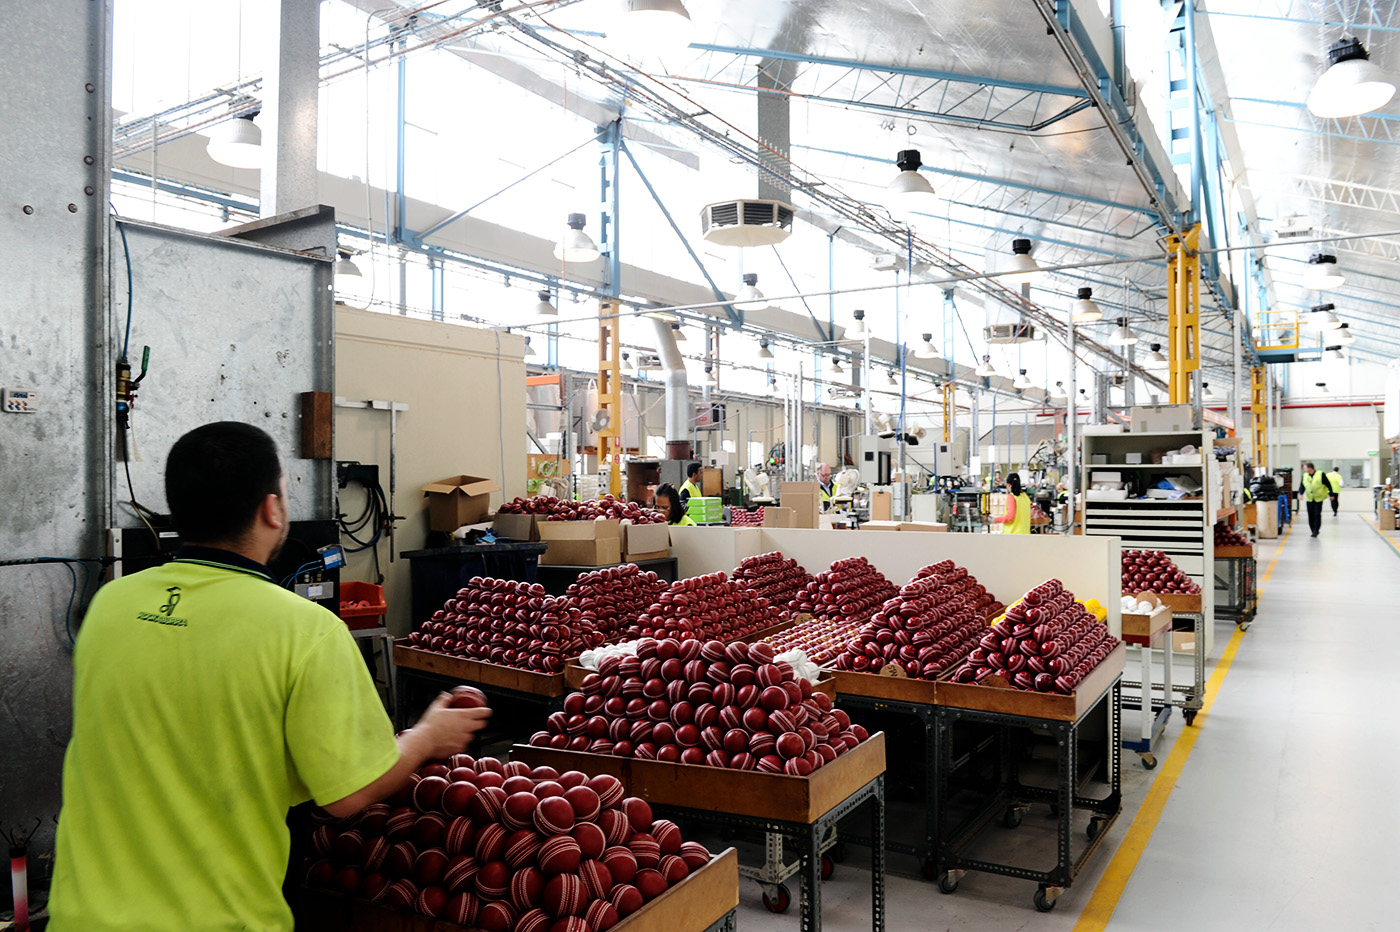 Cricket balls ready to be packed in the Kookaburra factory in Moorabbin in Melbourne